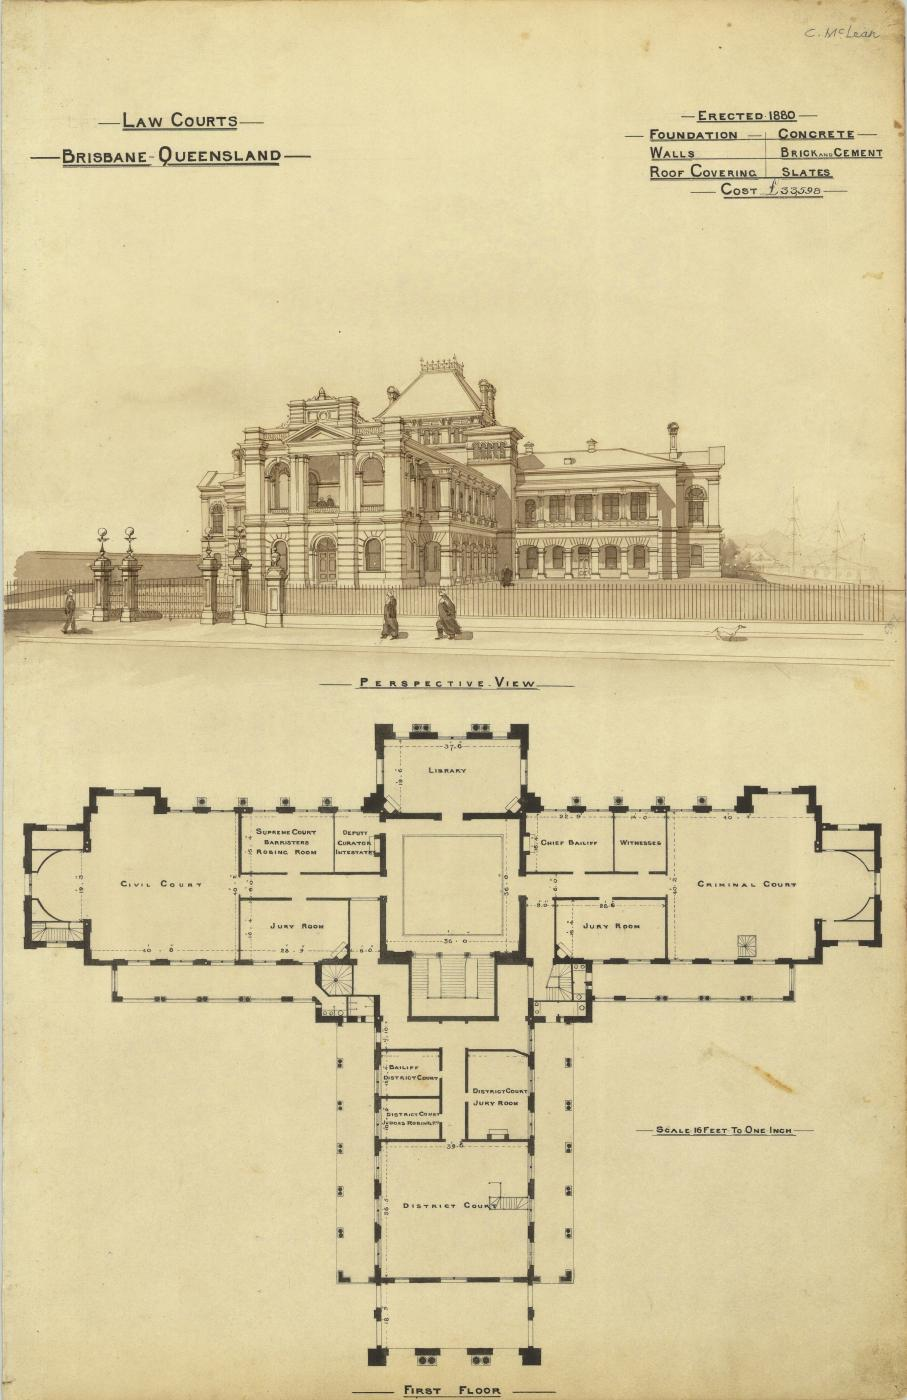 Architectural plan of the Law Courts, Brisbane